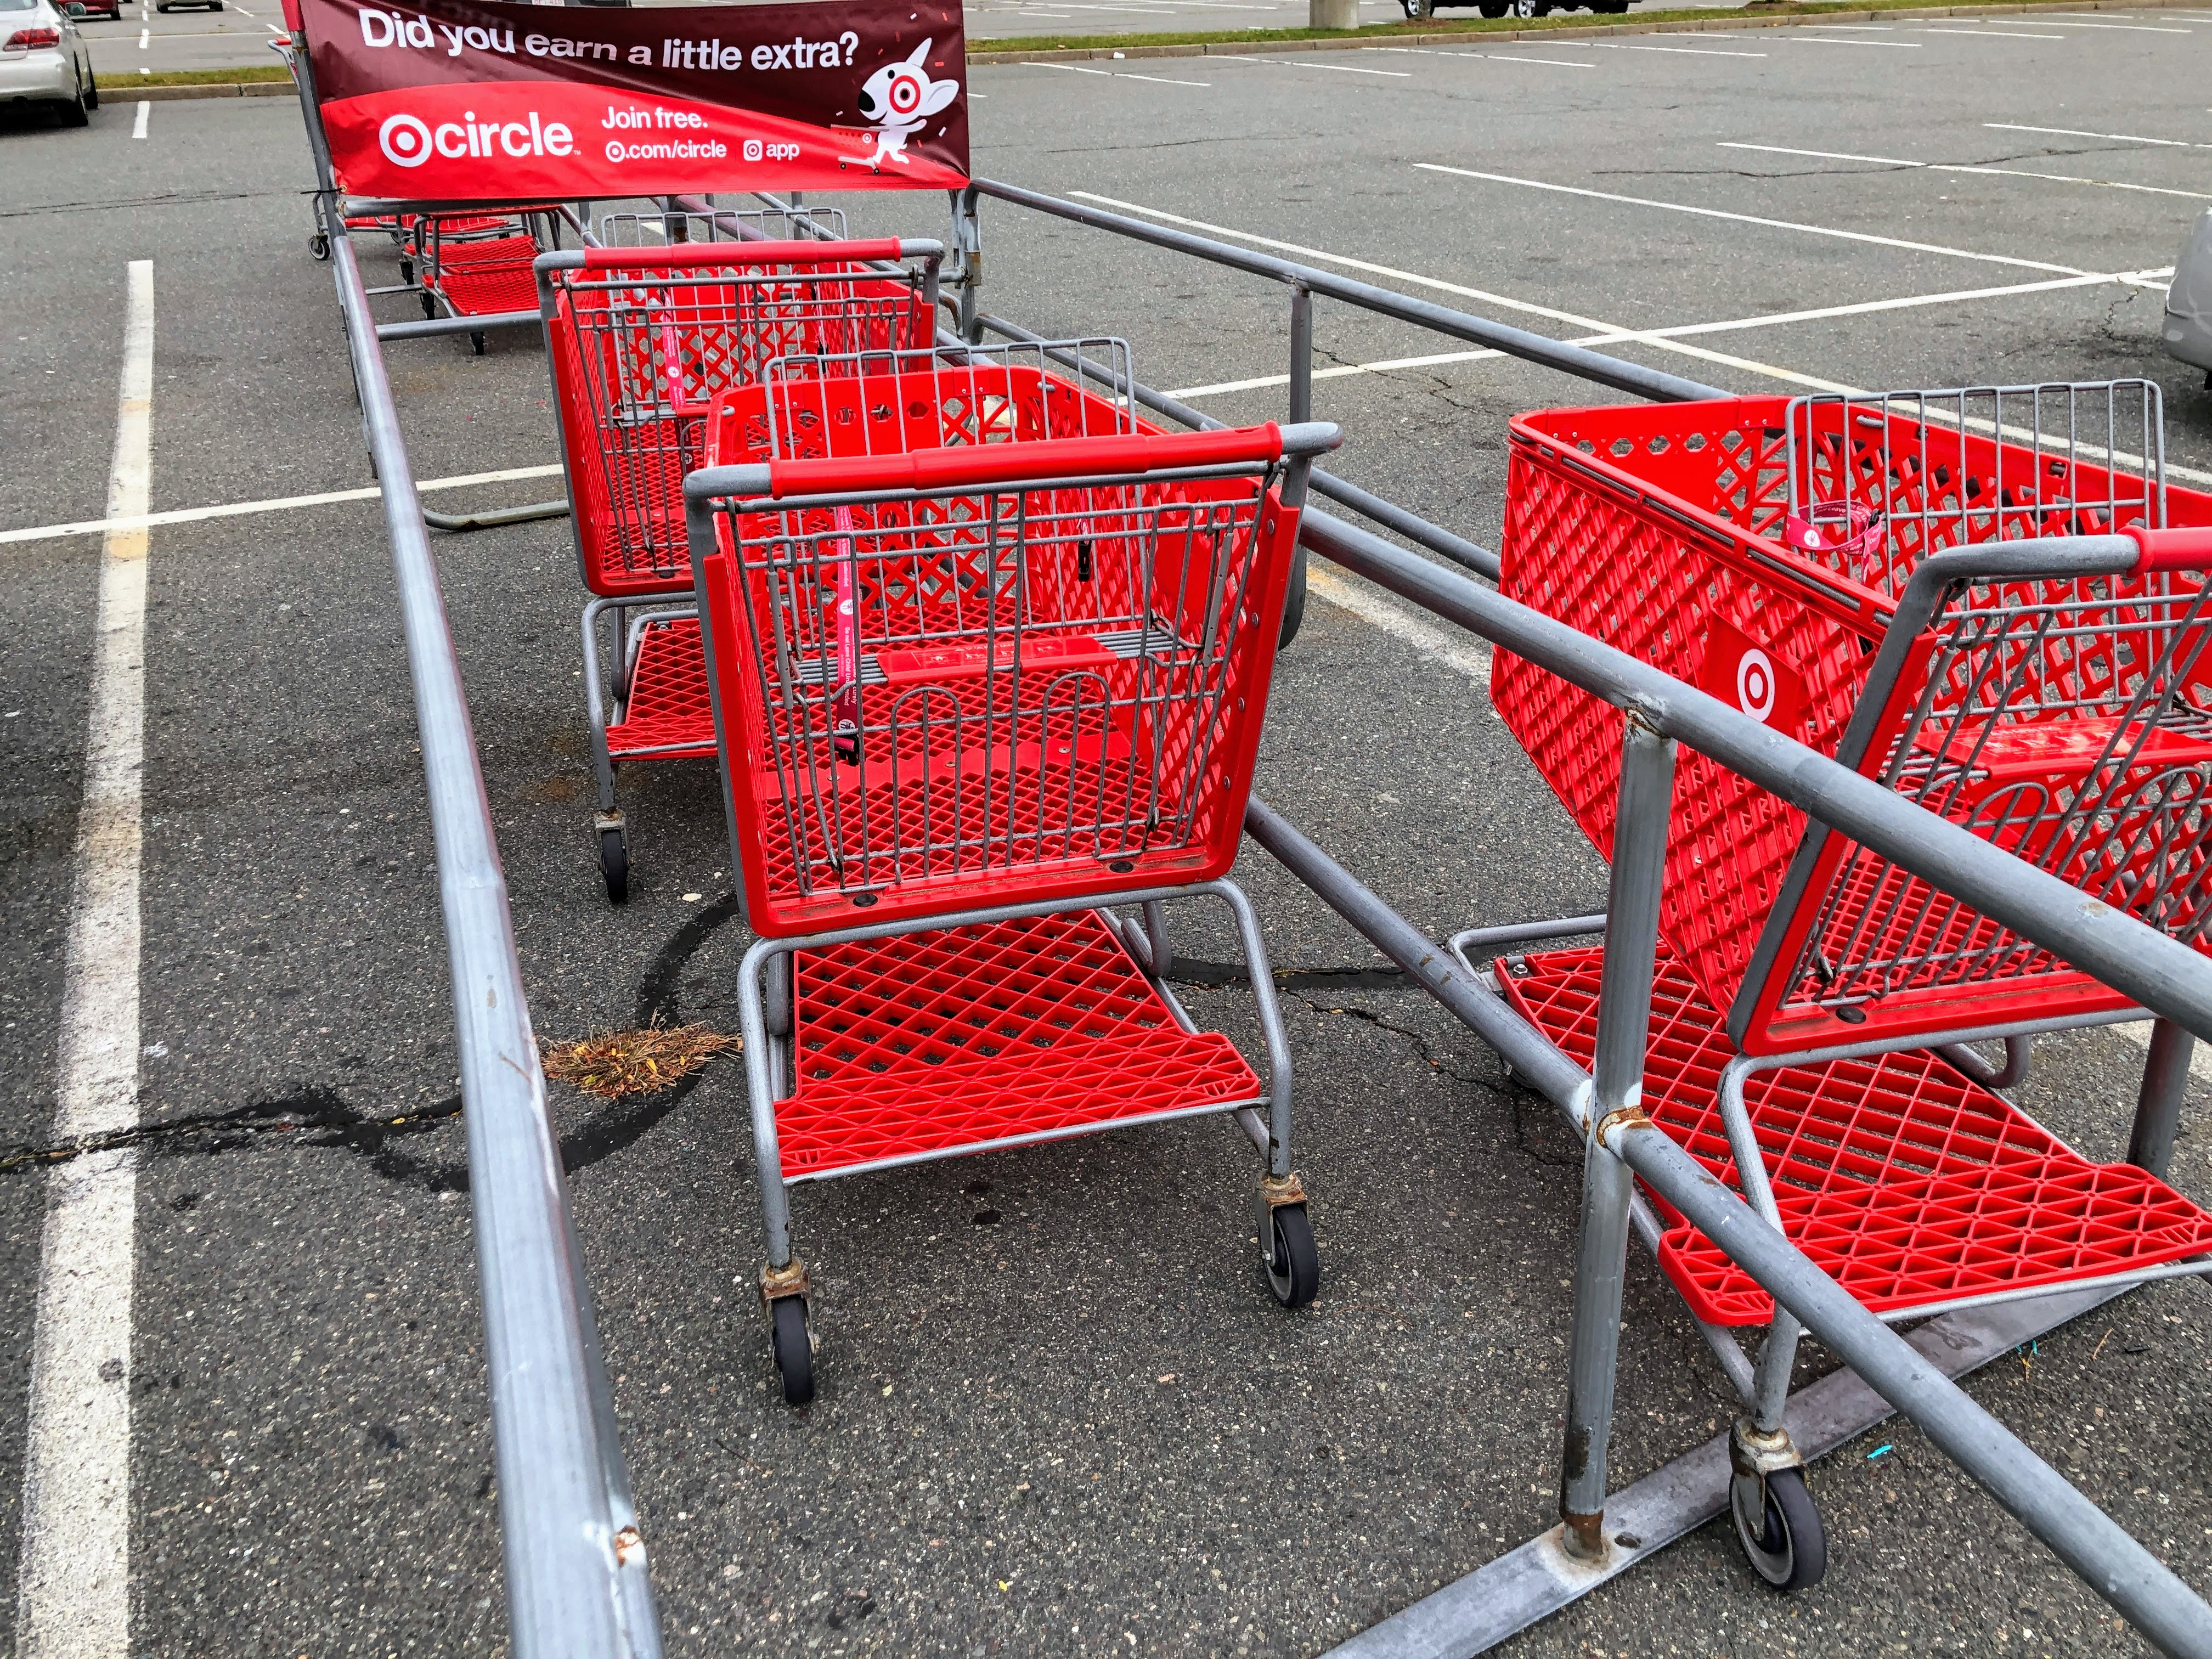 Target shopping carts in parking lot